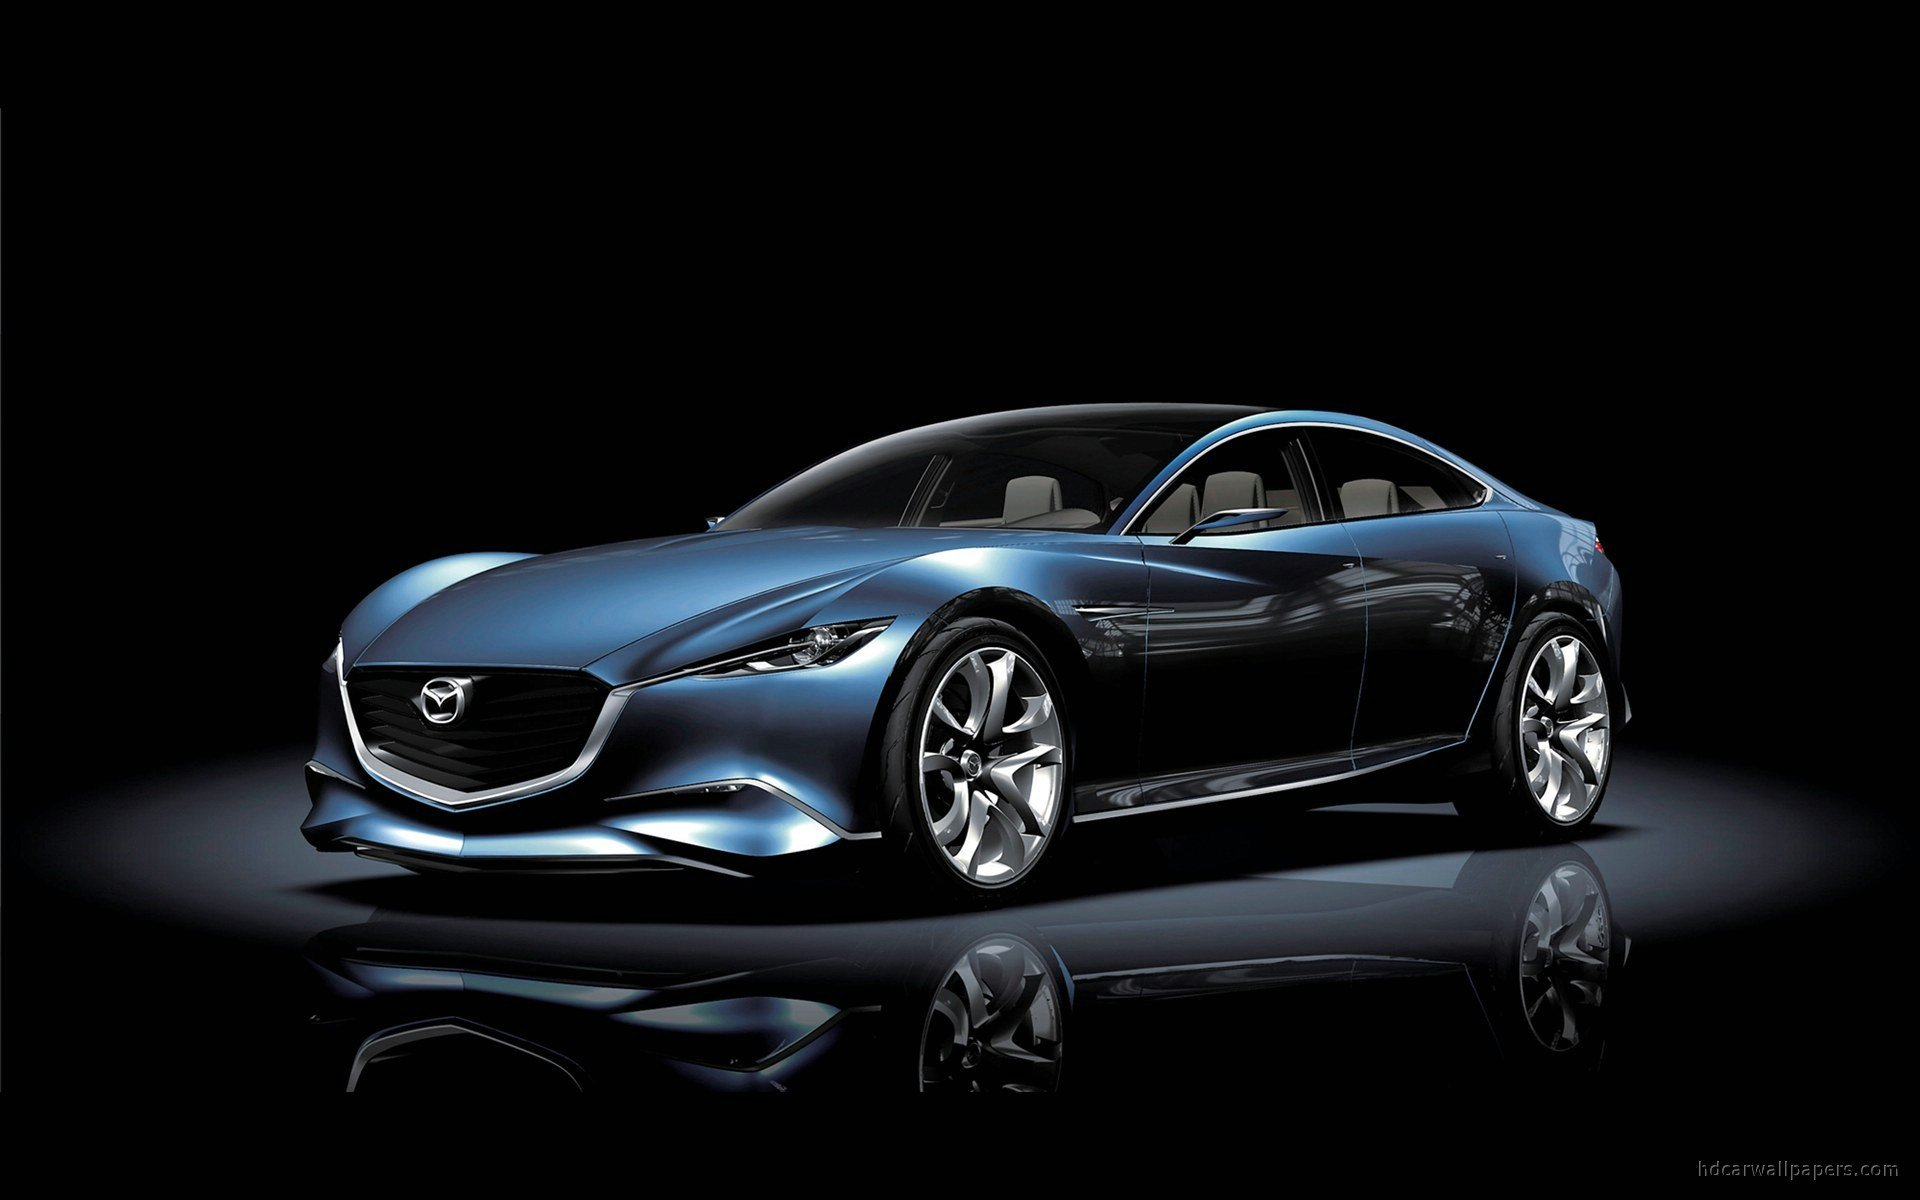 Latest 2011 Mazda Shinari Concept 2 Wallpaper Hd Car Wallpapers Free Download